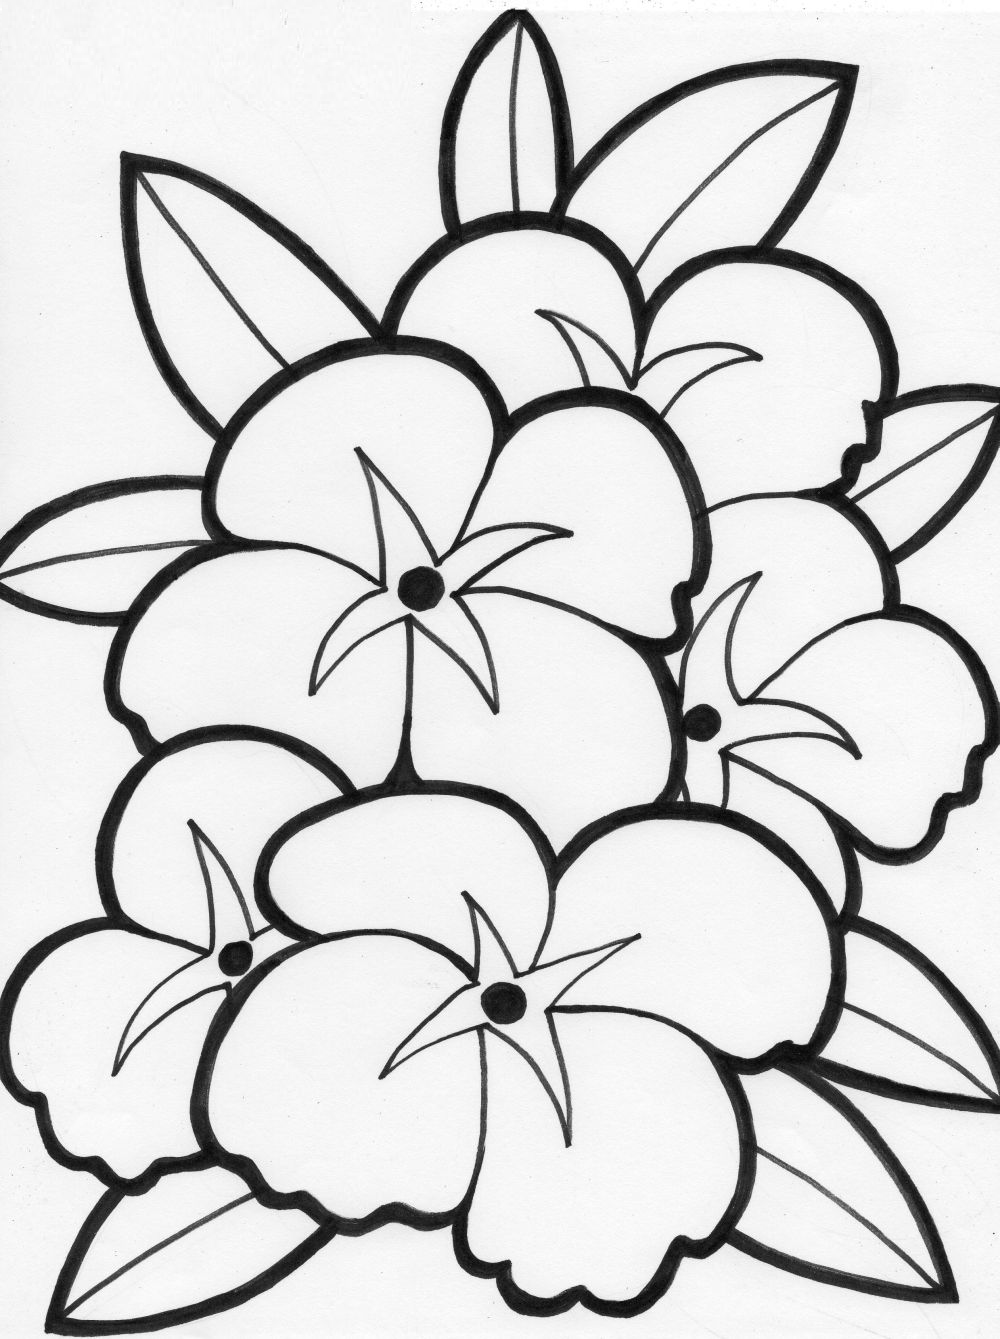 Get Free Printable Flower Coloring Pages And Make This Wallpaper For Your Desktop Tablet Or Smartphone Device Best Results You Can Choose Original